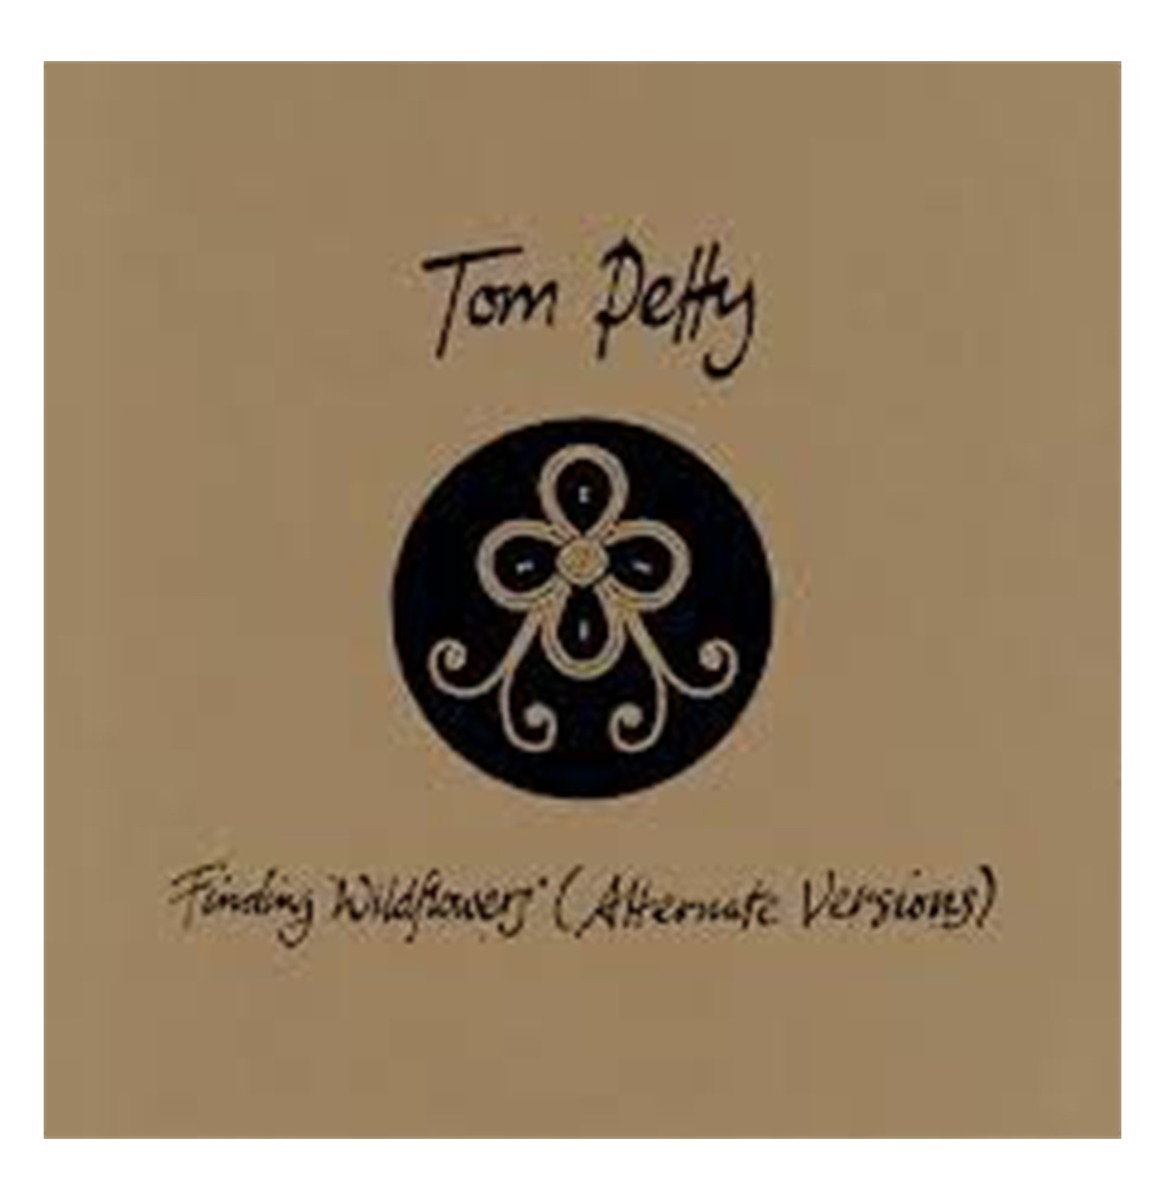 Tom Petty - Finding Wildflowers (Indie Only) 2 LP